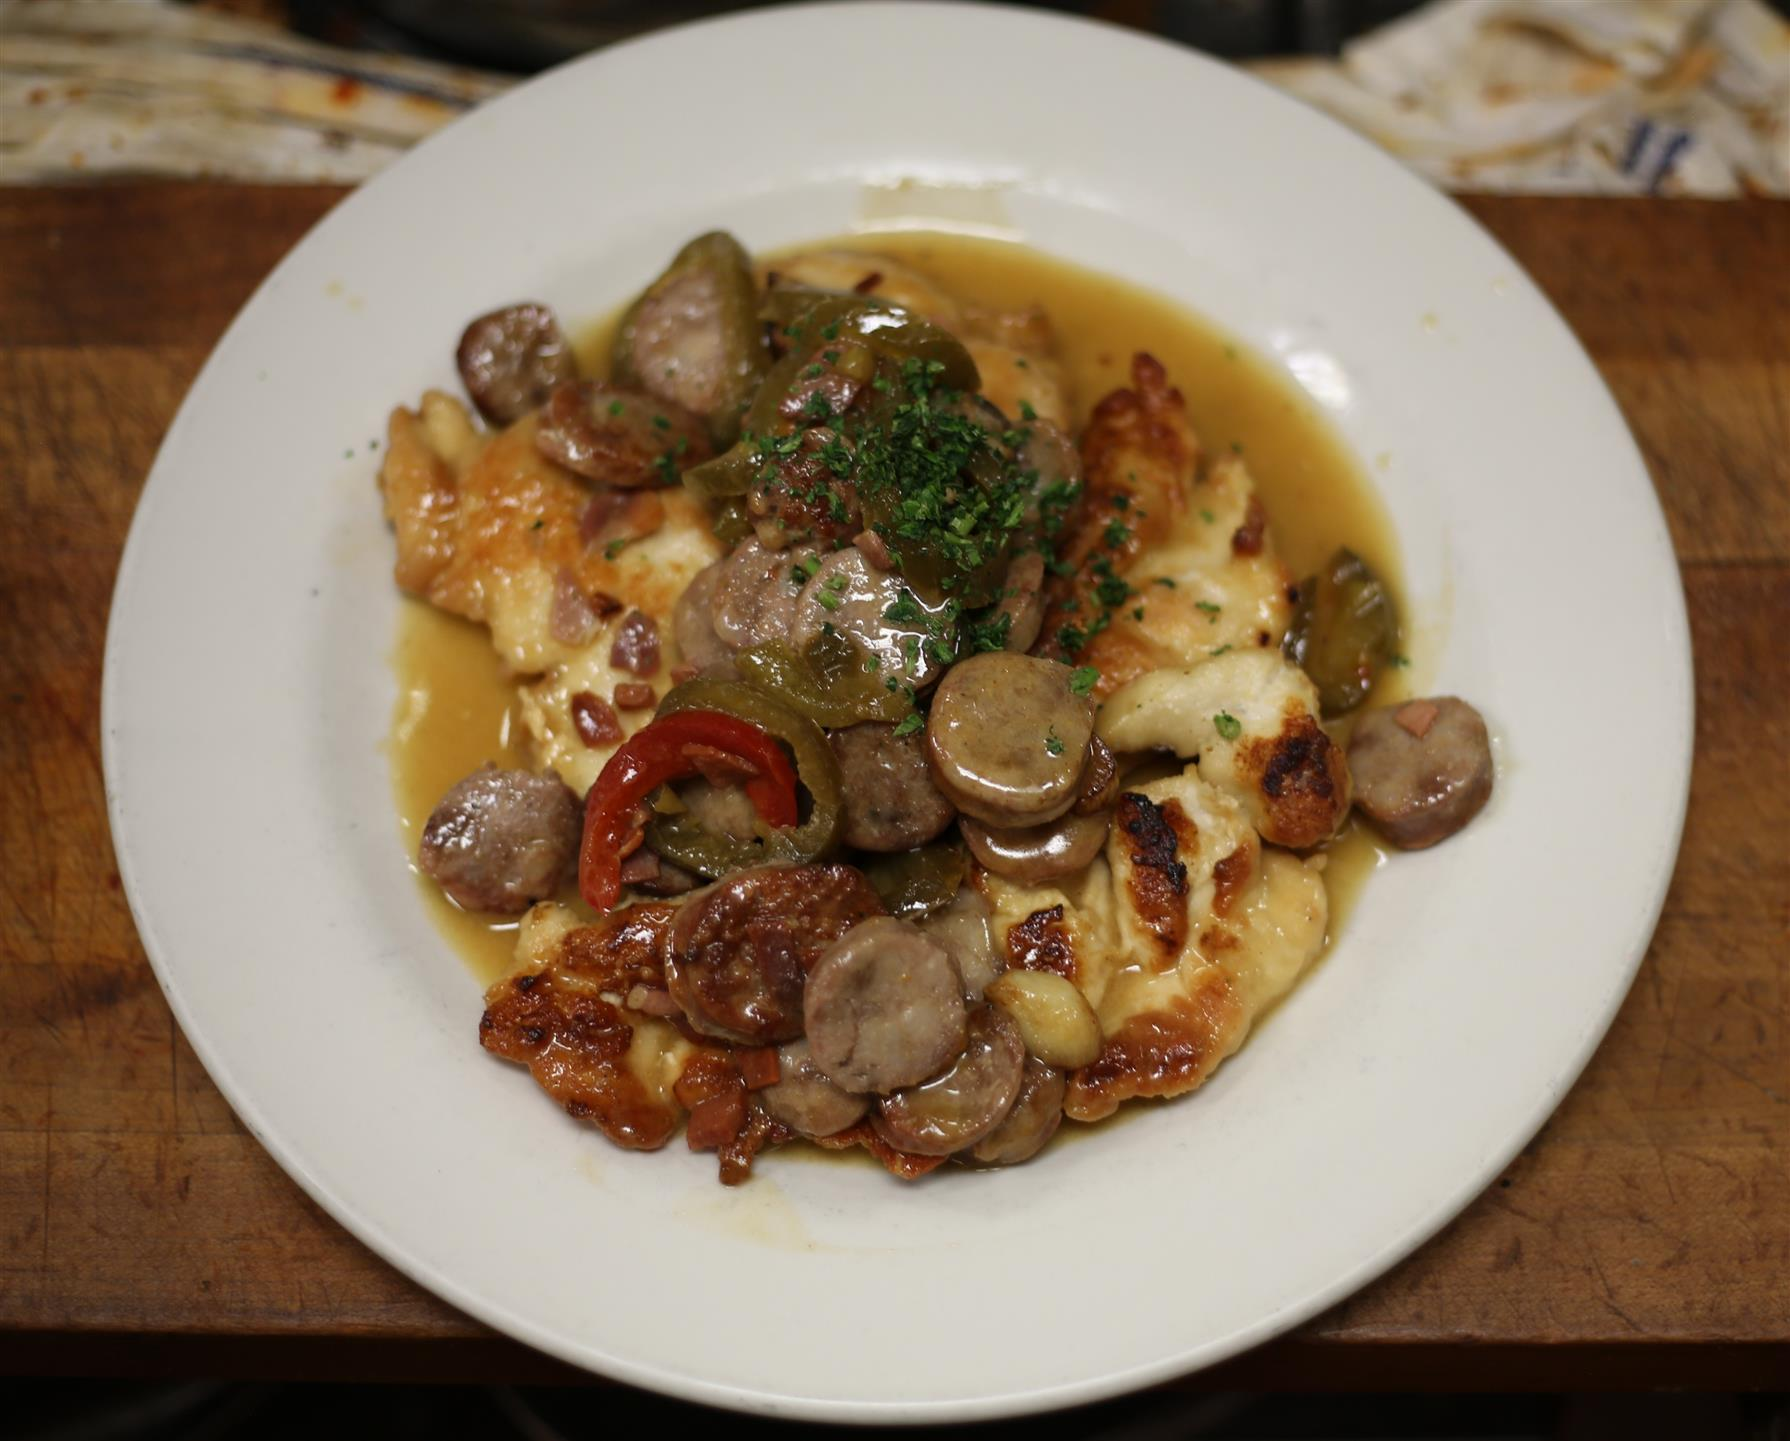 Chicken Scarpariello. Boneless chicken sauteed with sausage, prosciutto and garlic in lemon, butter and white wine.